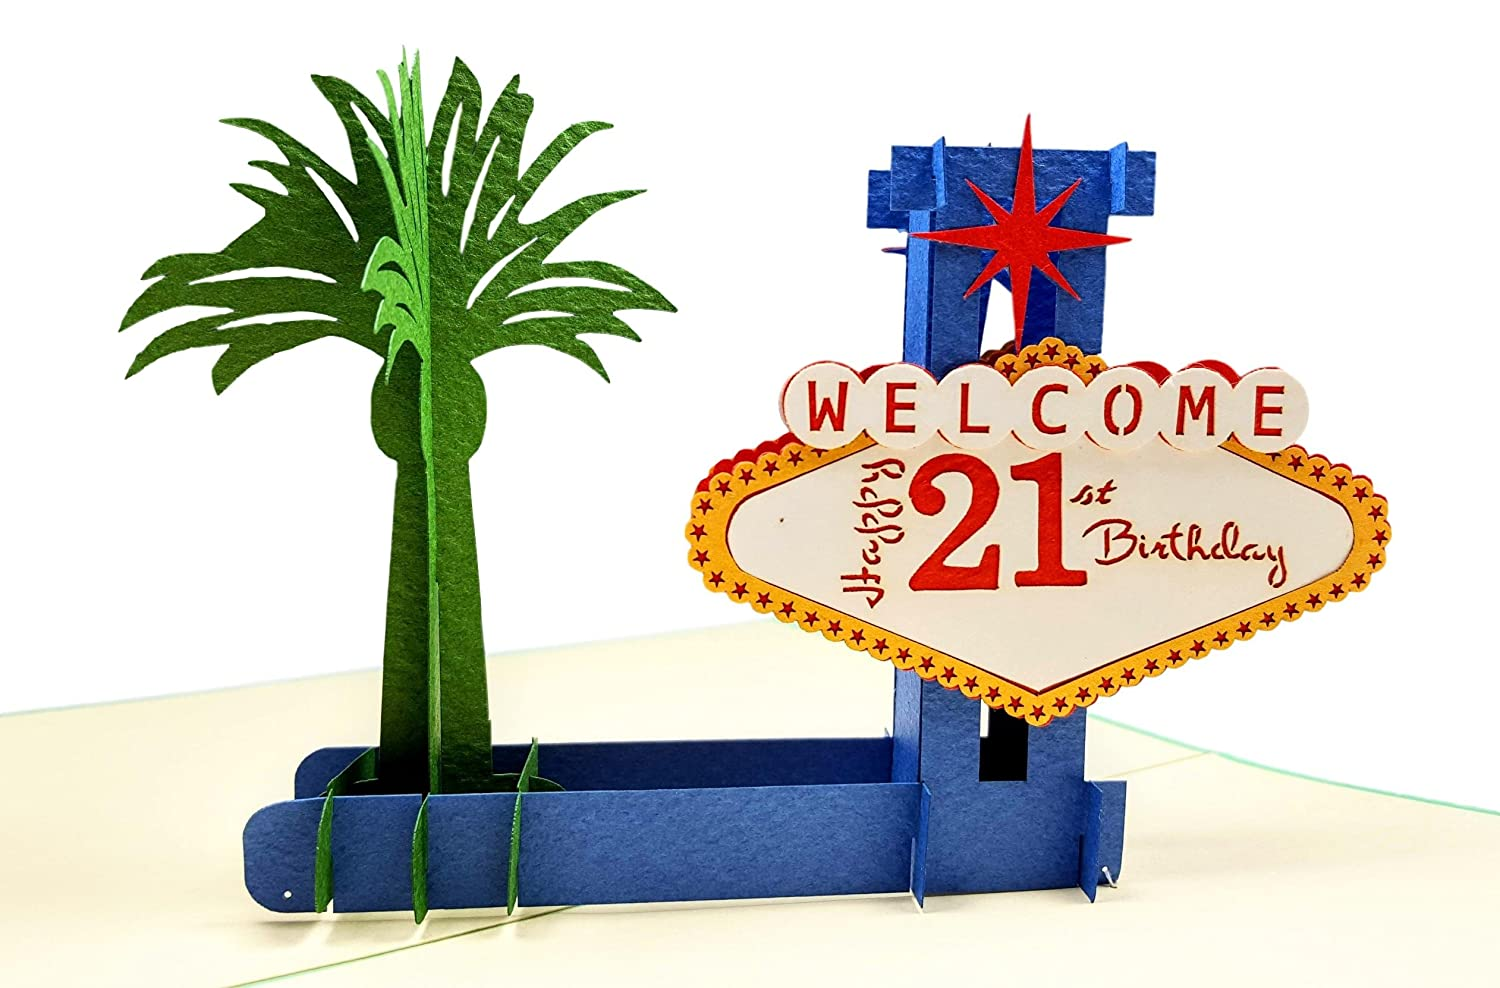 IGifts And Cards Happy 21st Birthday Las Vegas Style 3D Pop Up Greeting Card